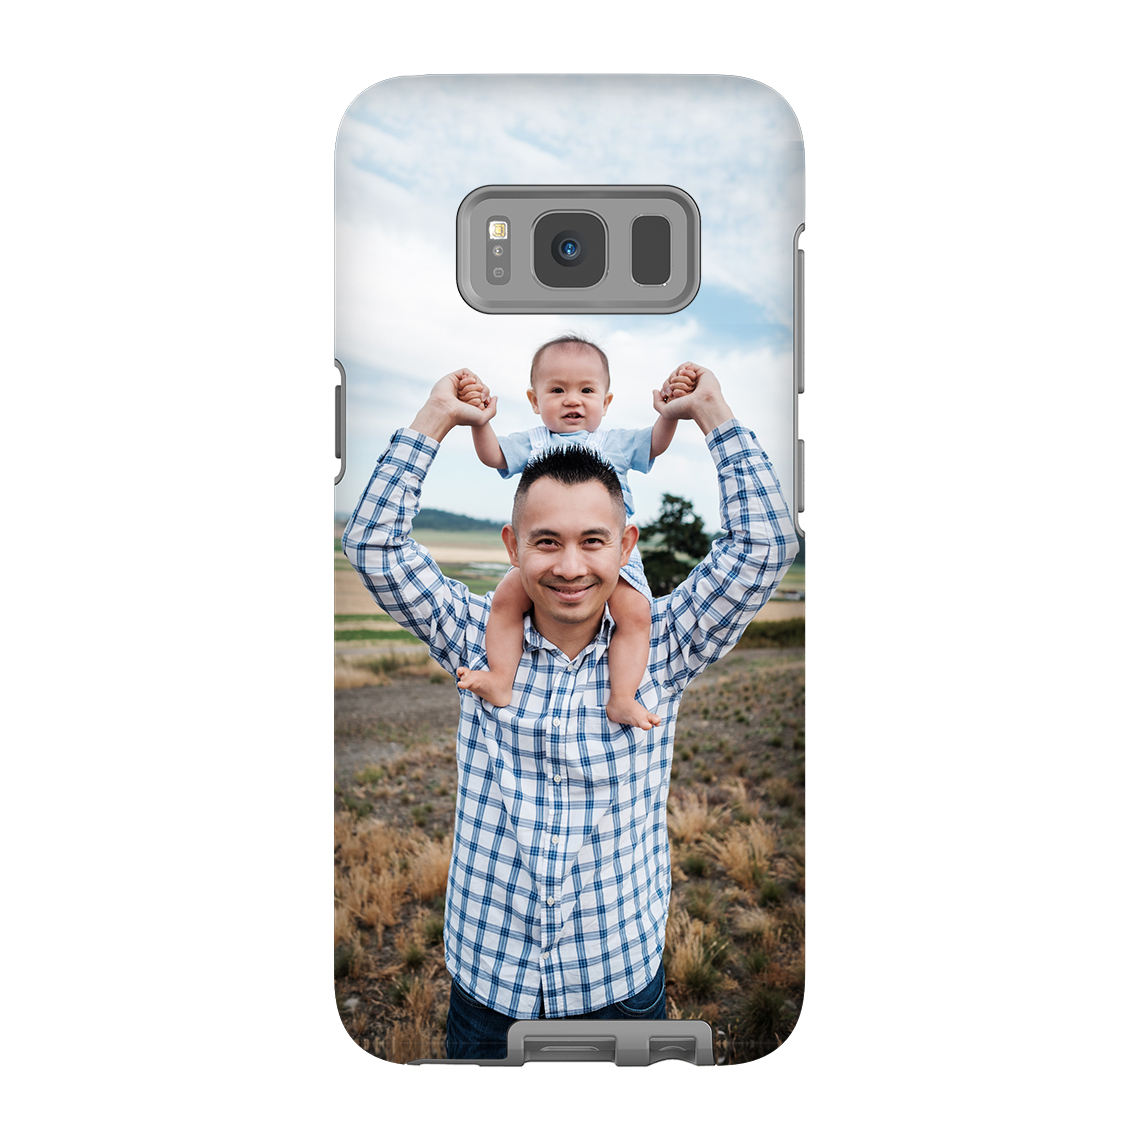 Creative photo gifts for Father's Day: Custom Photo Tough Case | Snapfish